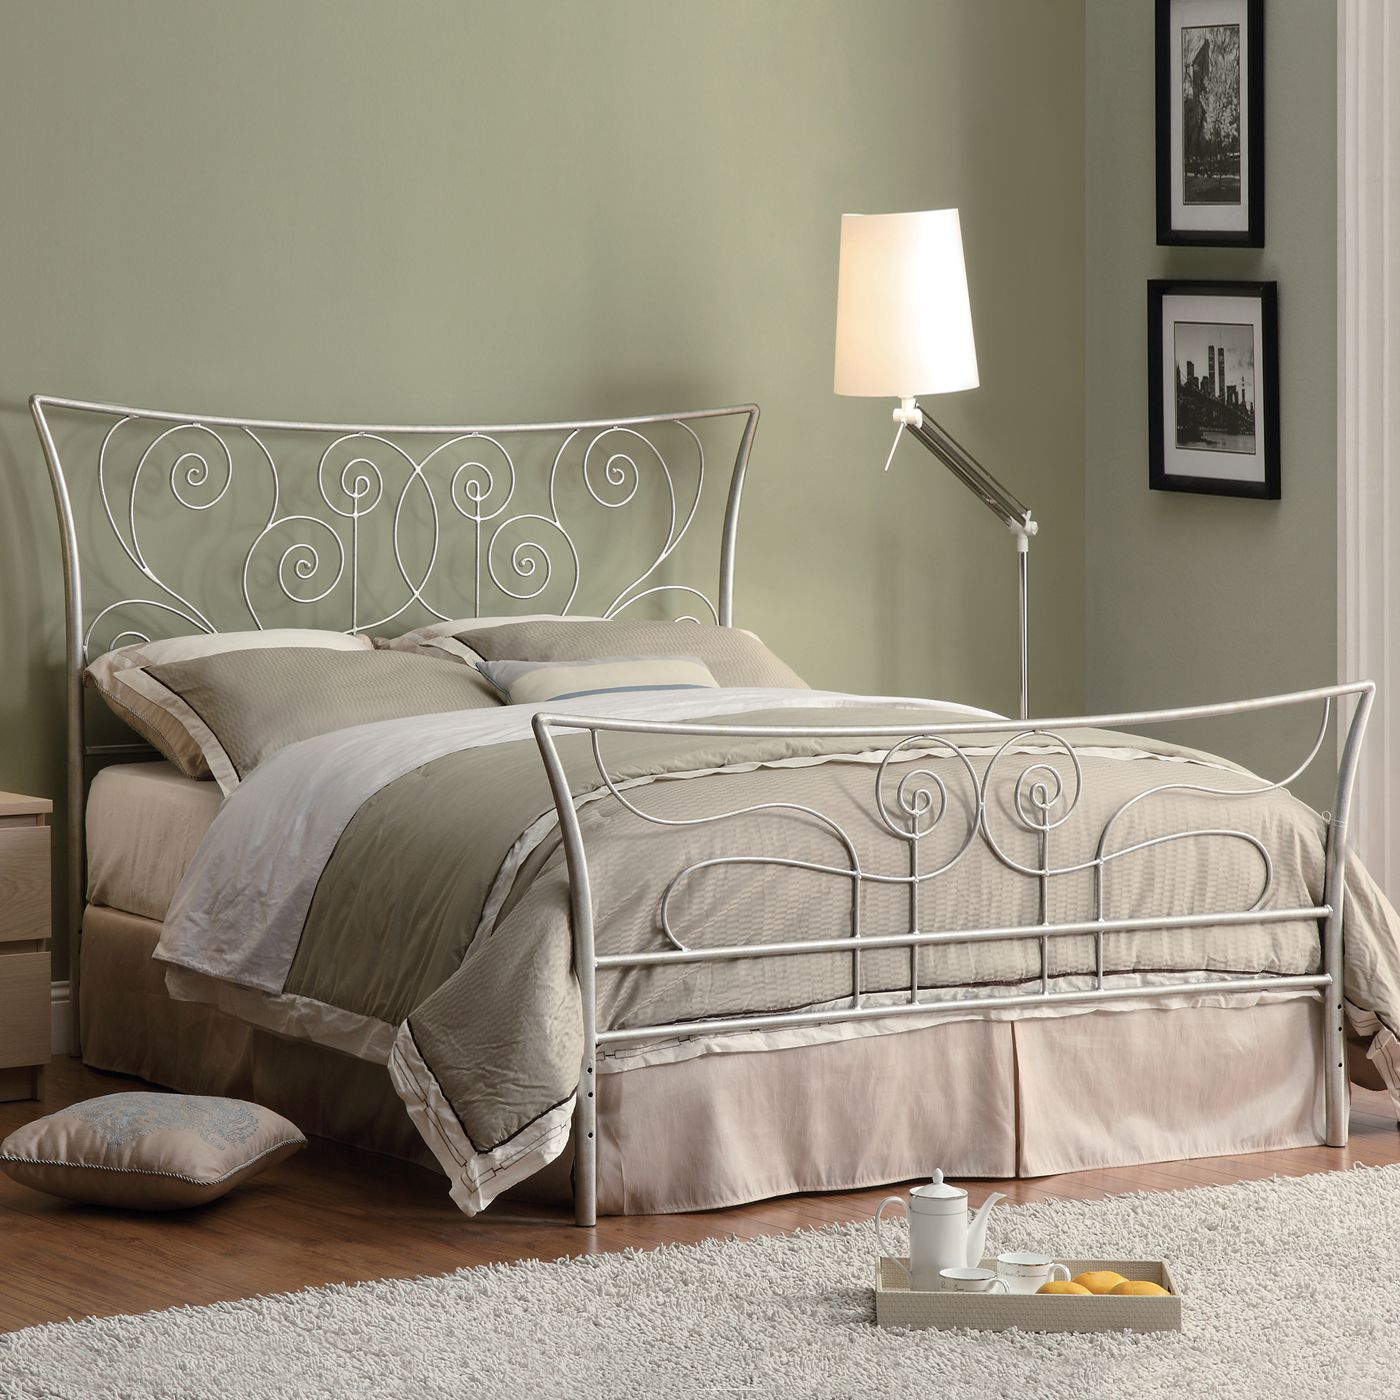 Coaster Fine Furniture 300252Q Queen Bed Headboard and Footboard Set ...